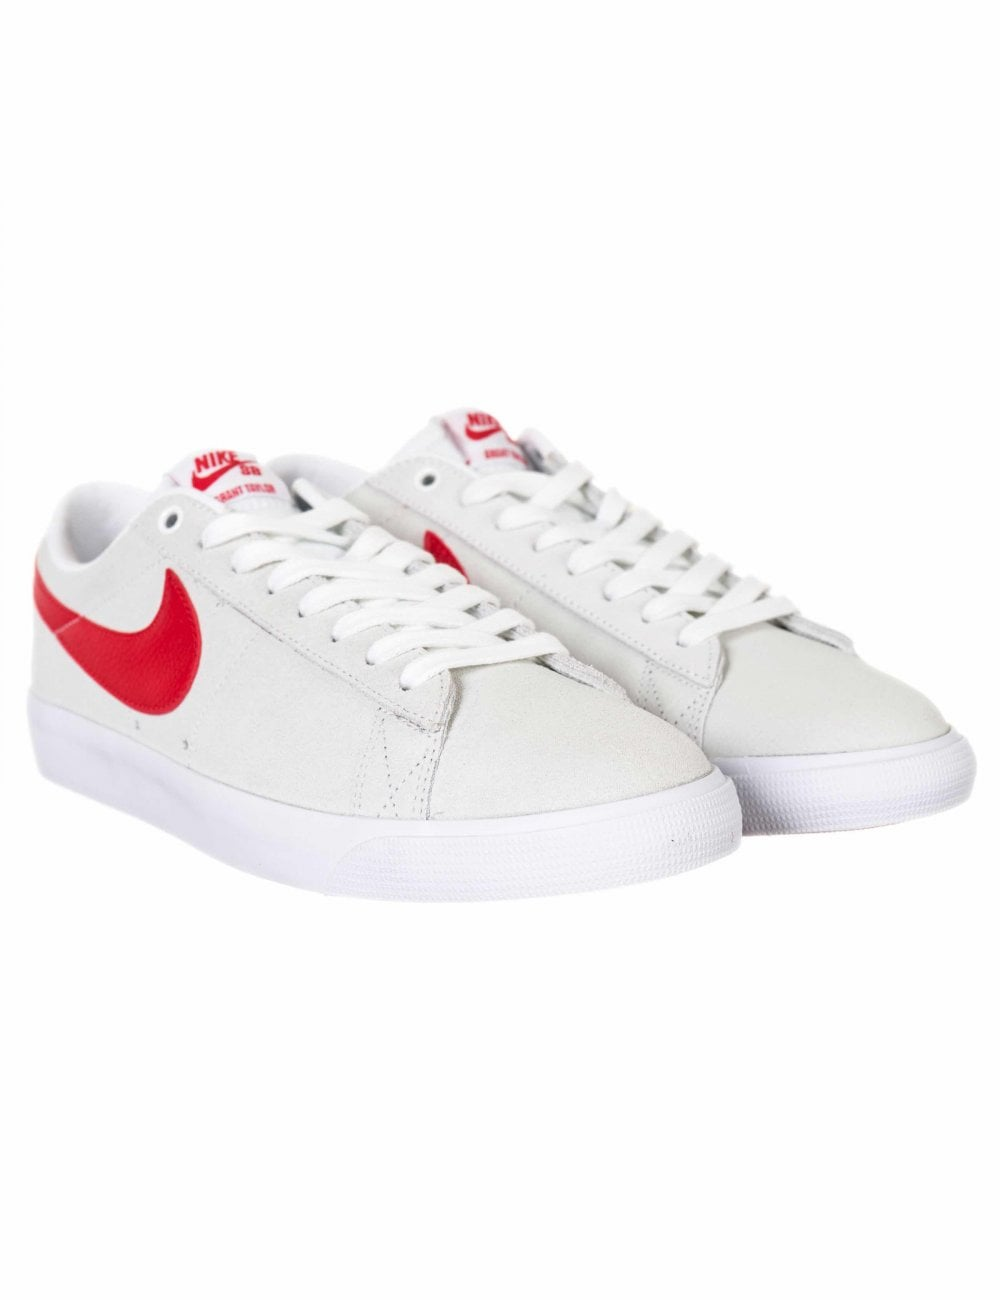 reputable site 27138 29d22 Zoom Blazer Low GT Shoes - White/University Red